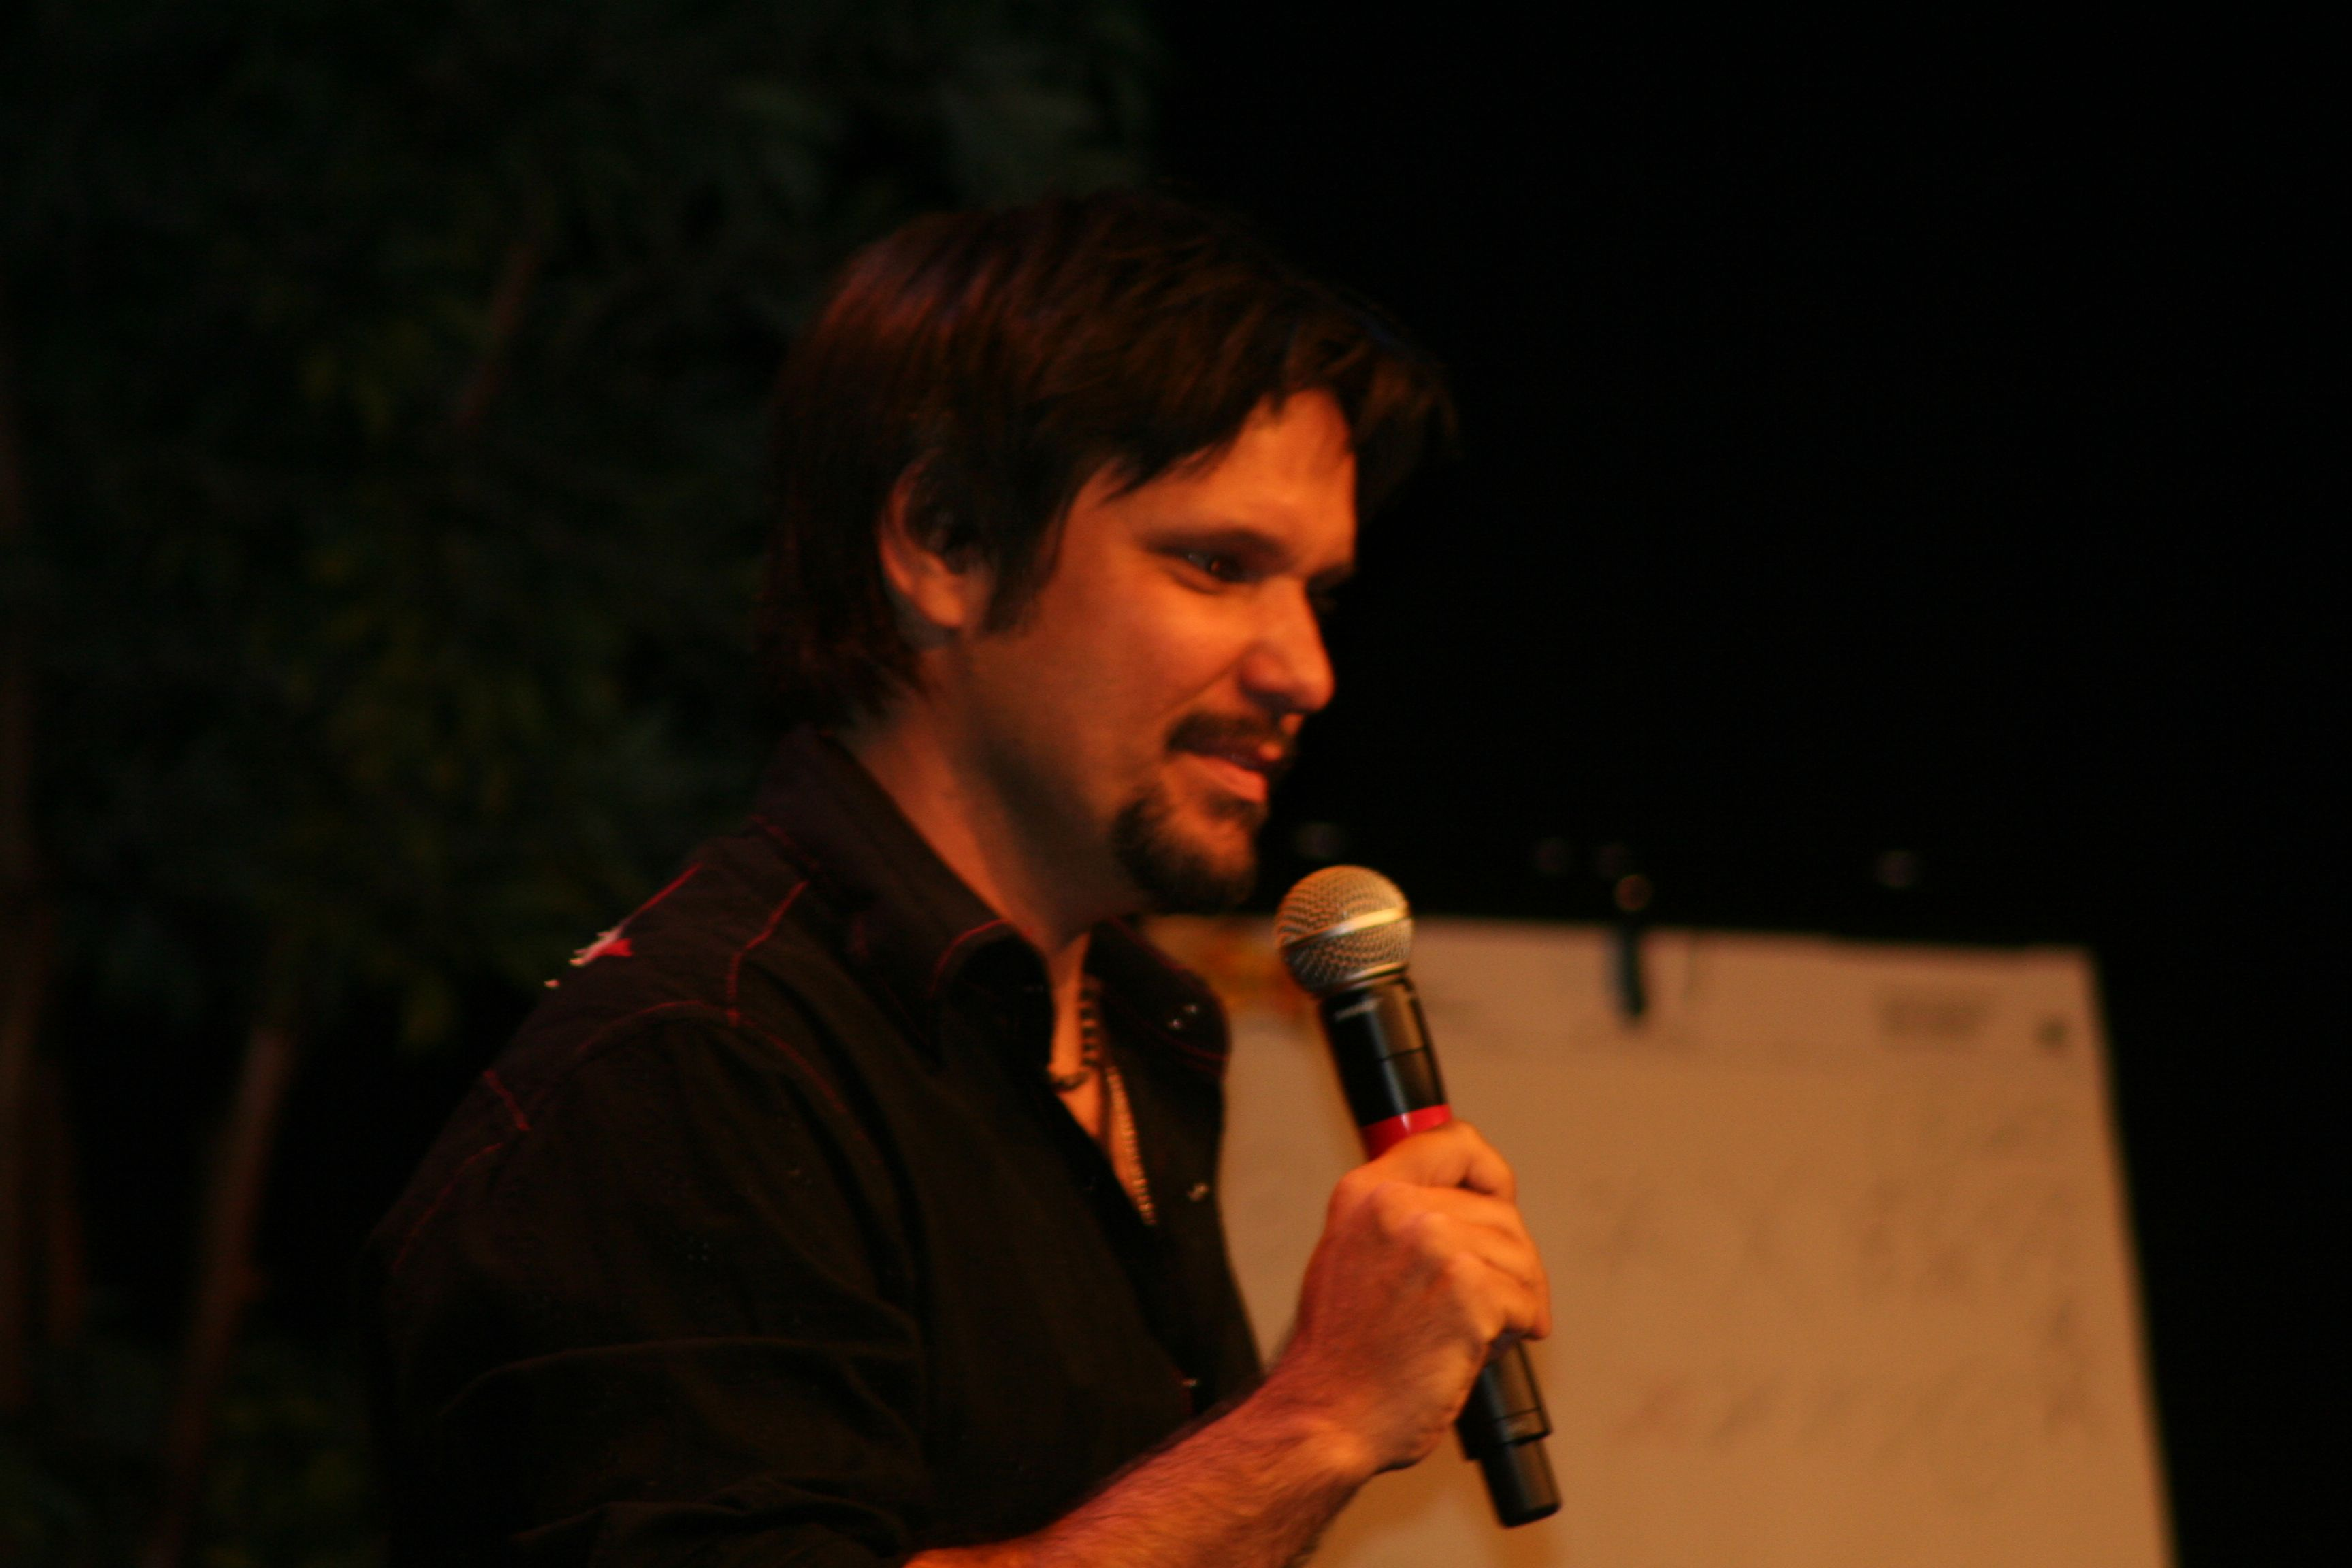 Ted Dekker at the Gathering 2008